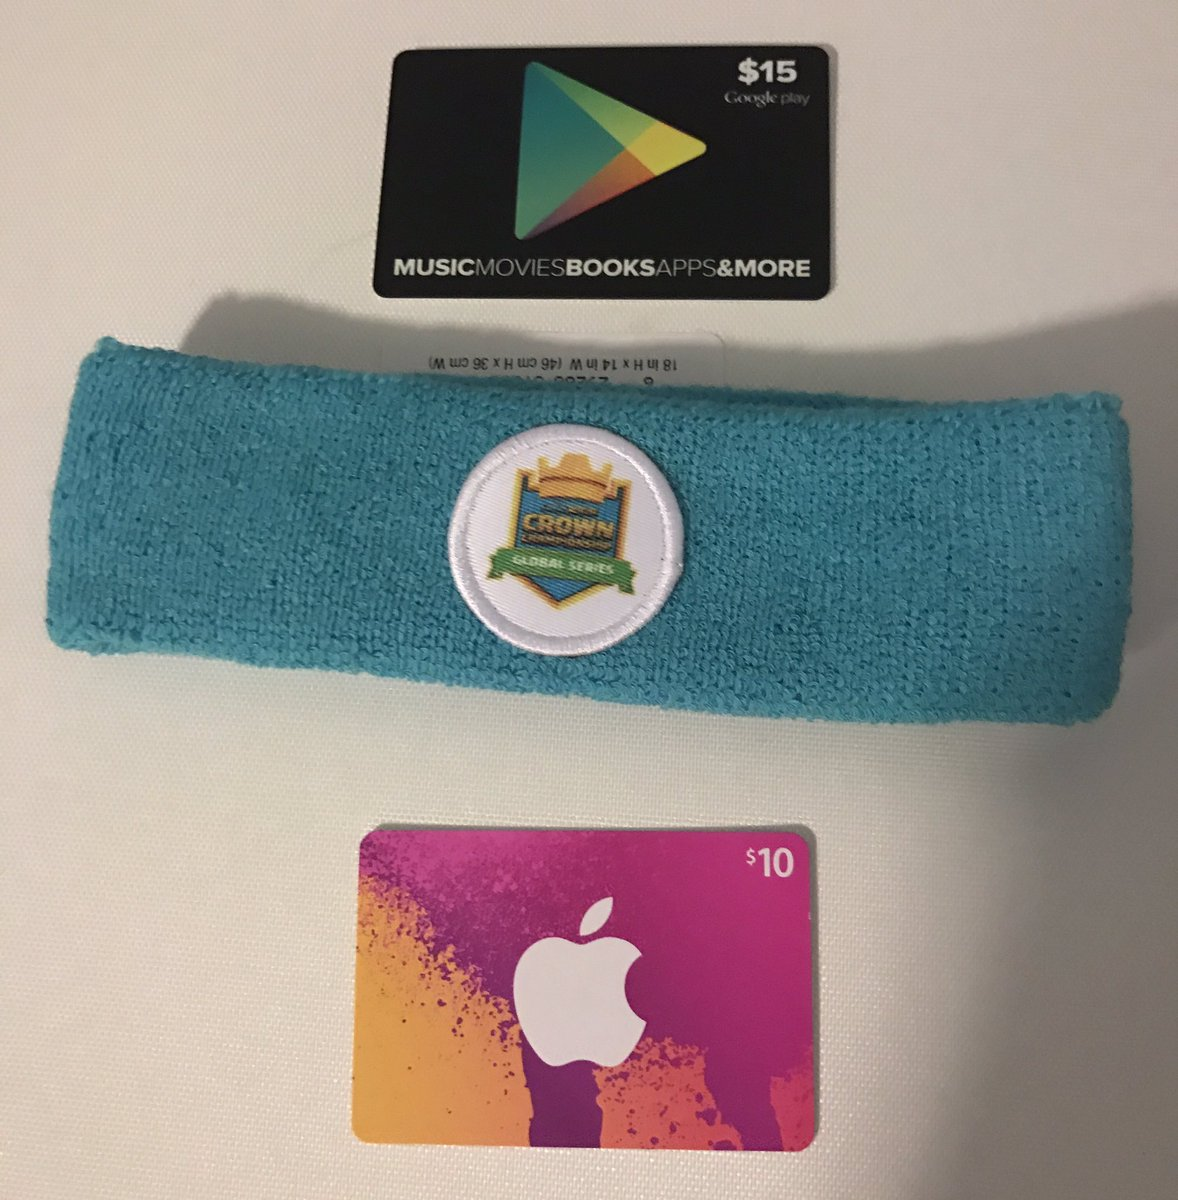 Giveaway time!! Winner's choice! $10 iTunes $15 GooglePlay or official CCGS headband (shipped worldwide) - RT & Follow to enter :)